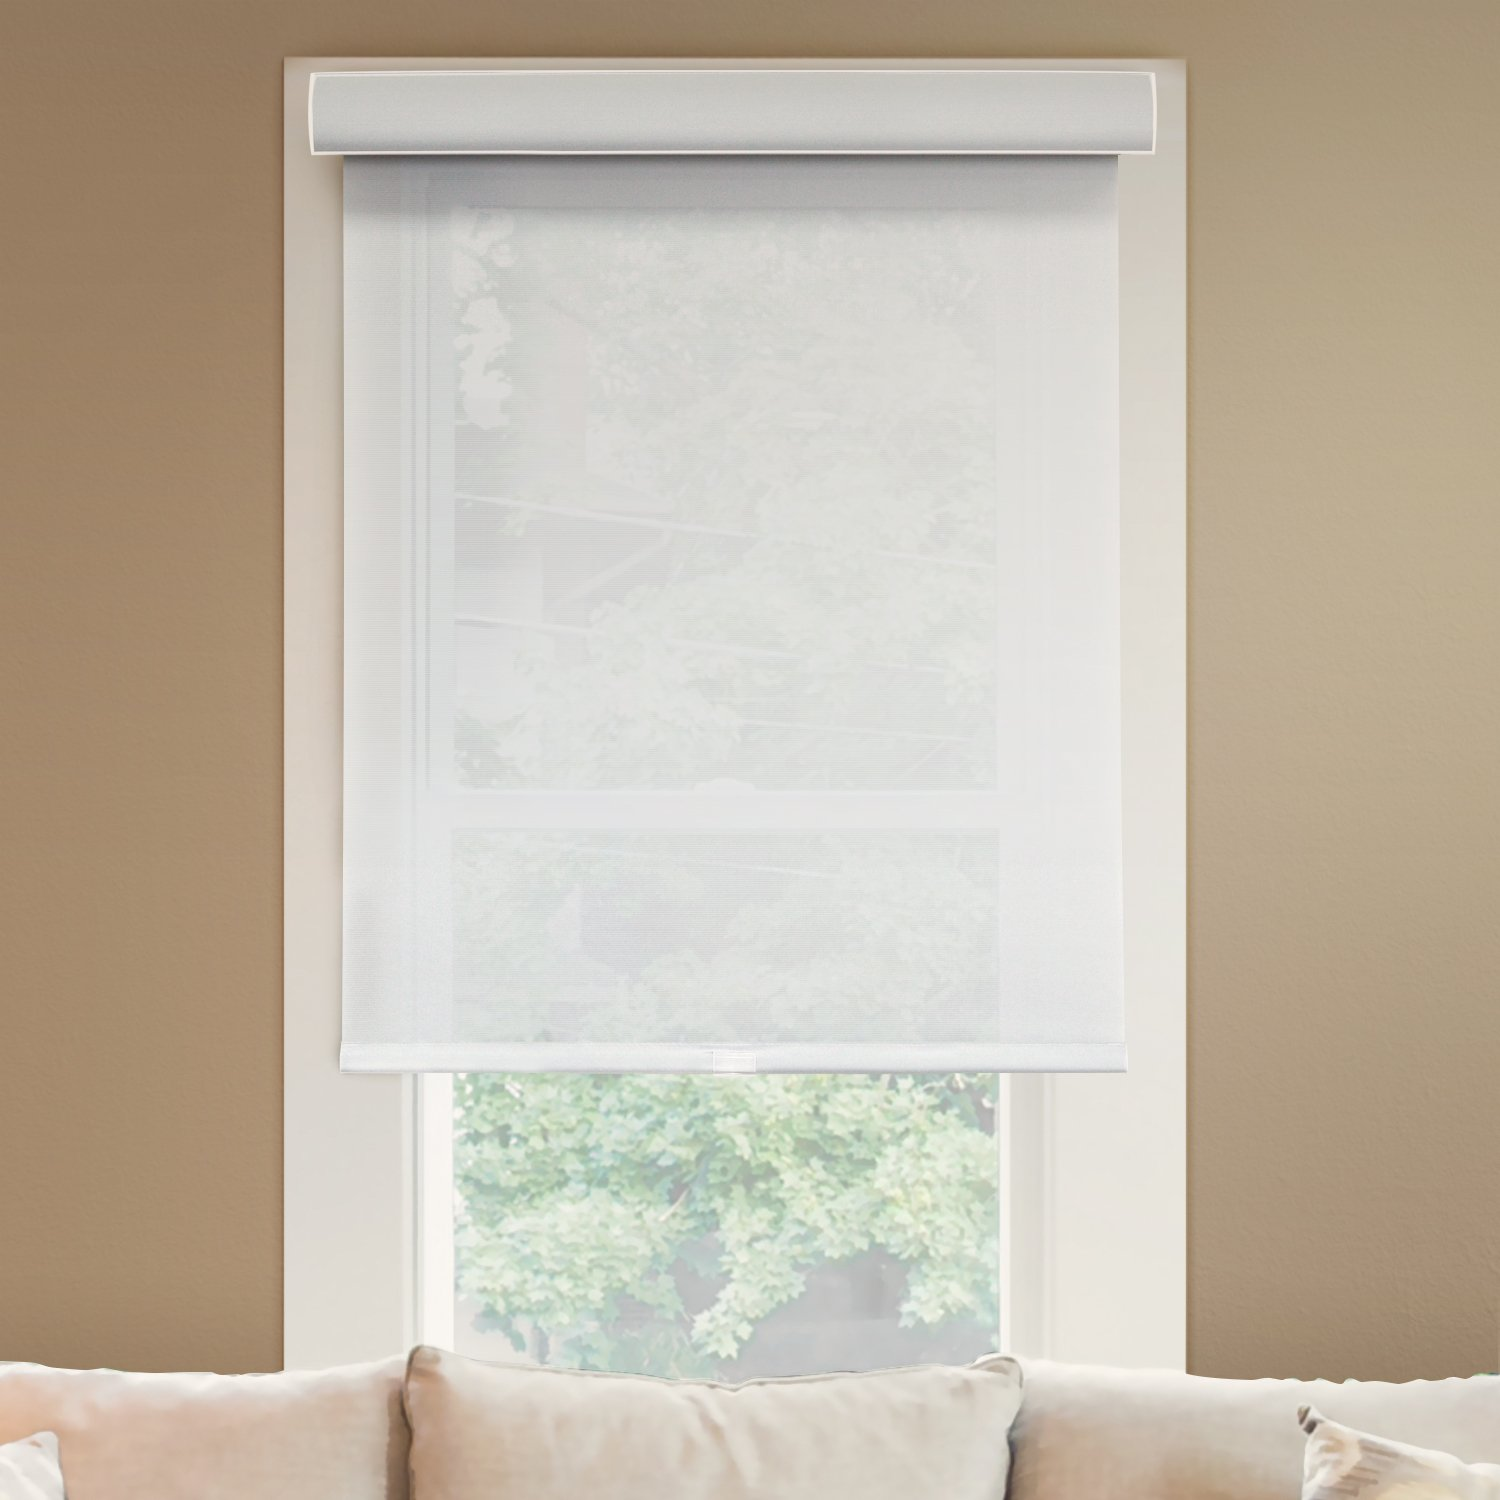 Chicology Deluxe Free-Stop Cordless Roller Shades No Tug Privacy Window Blind, 71'' W X 72'' H, Magnolia (Light Filtering)